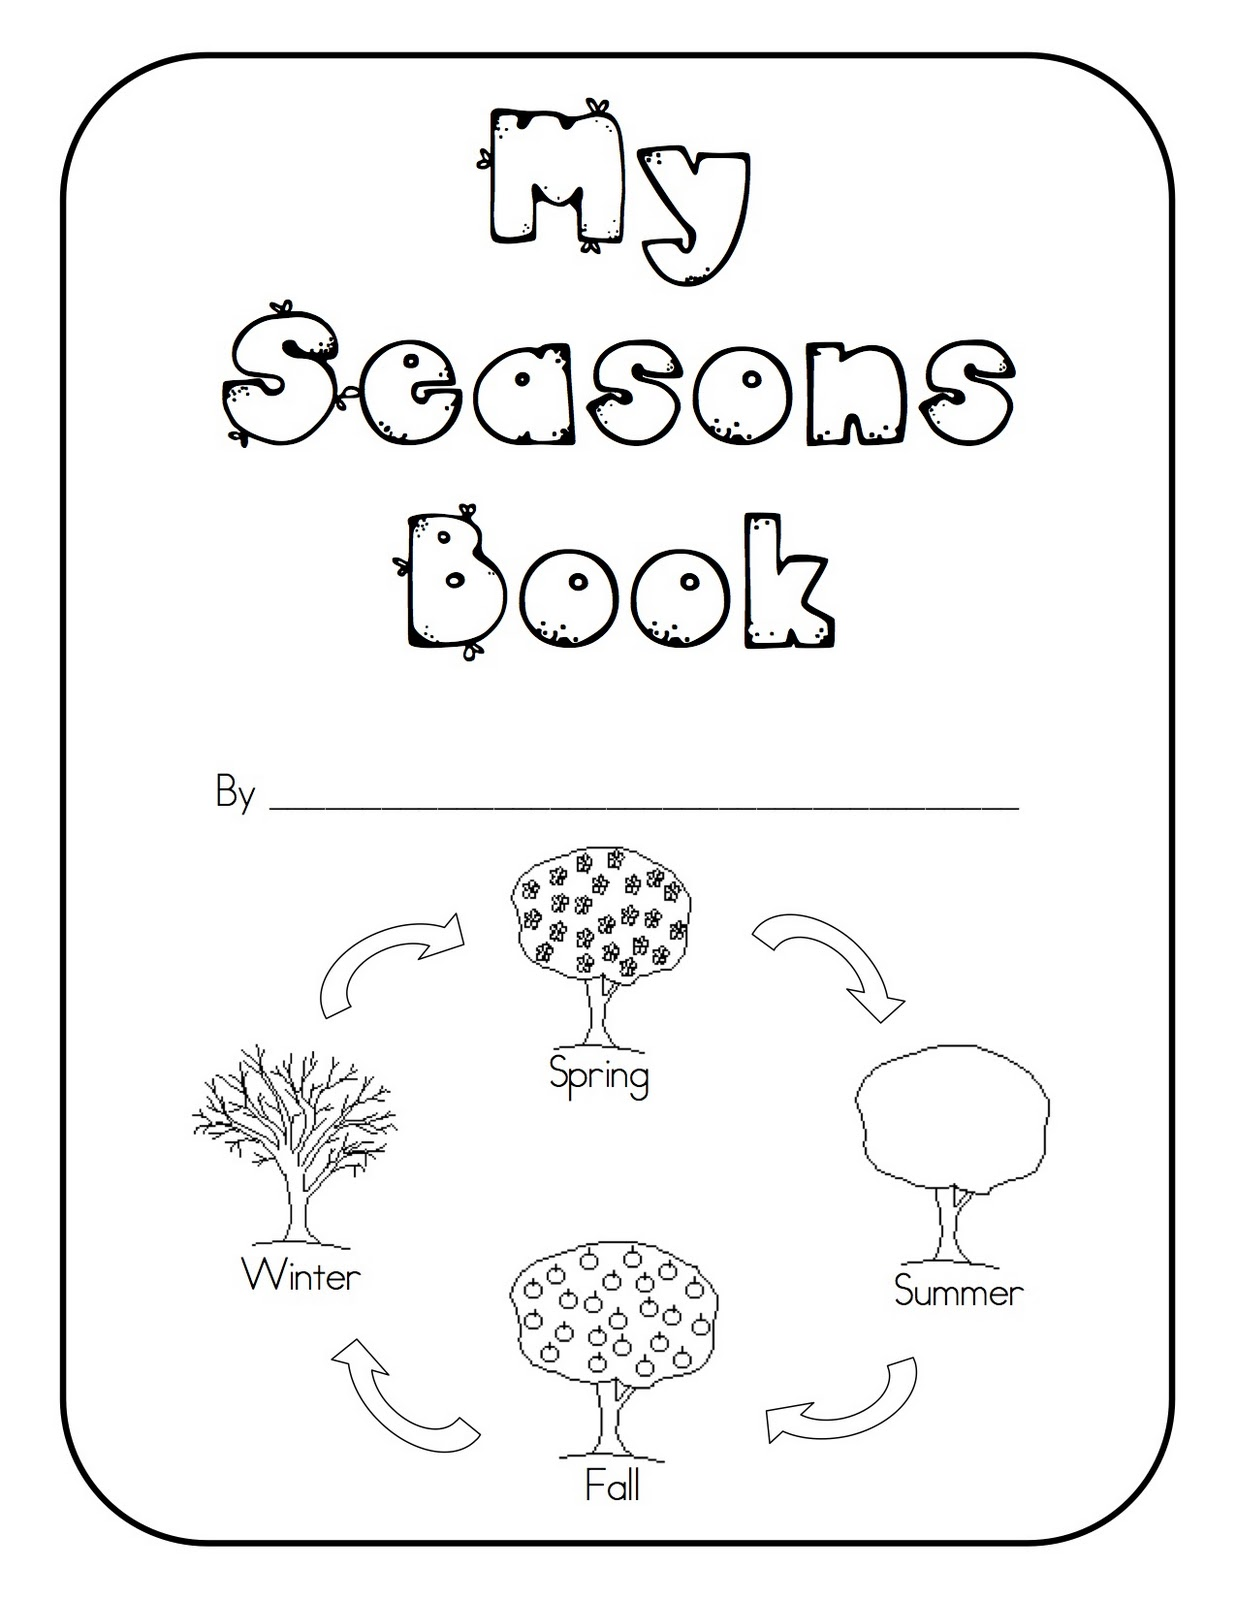 Four Seasons Tree Coloring Page Coloring Pages